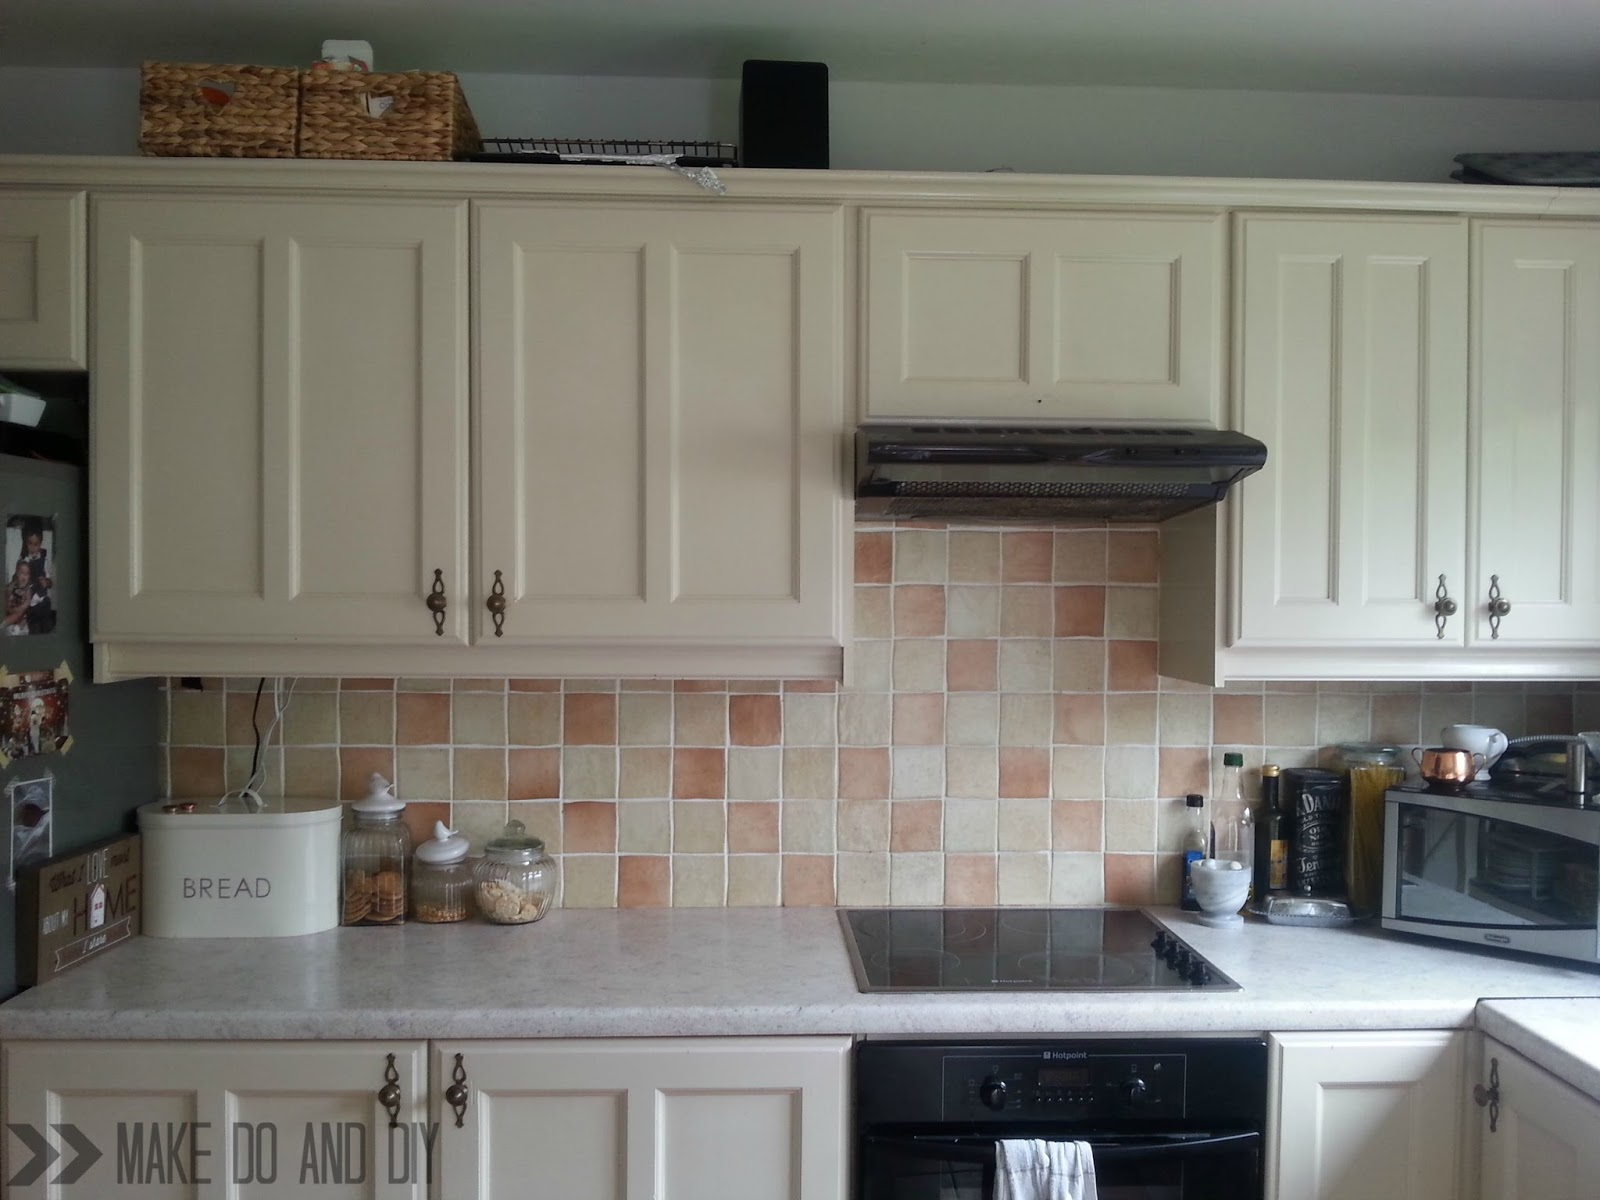 Medium image of 200 euro one week full kitchen makeover  floor backsplash cabinets